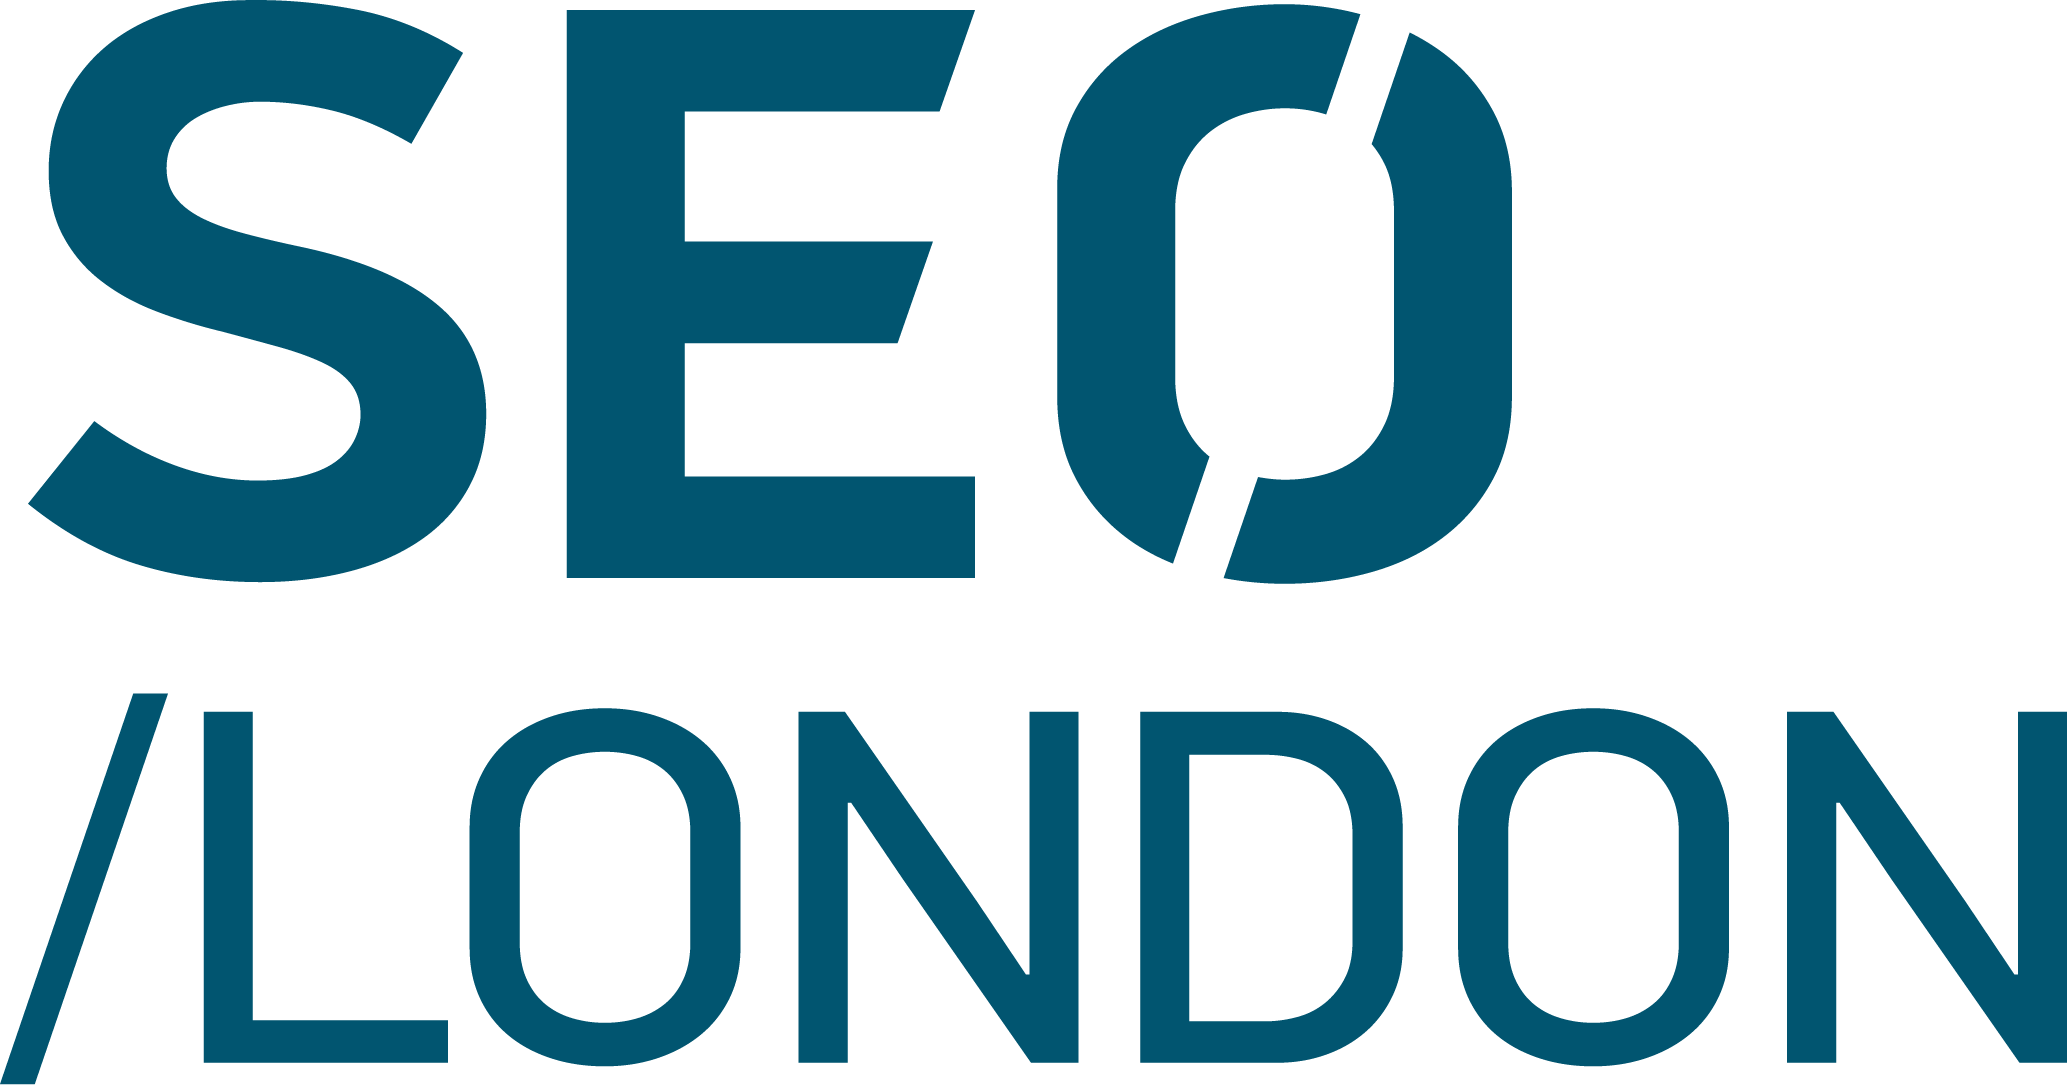 Logo image for SEO London